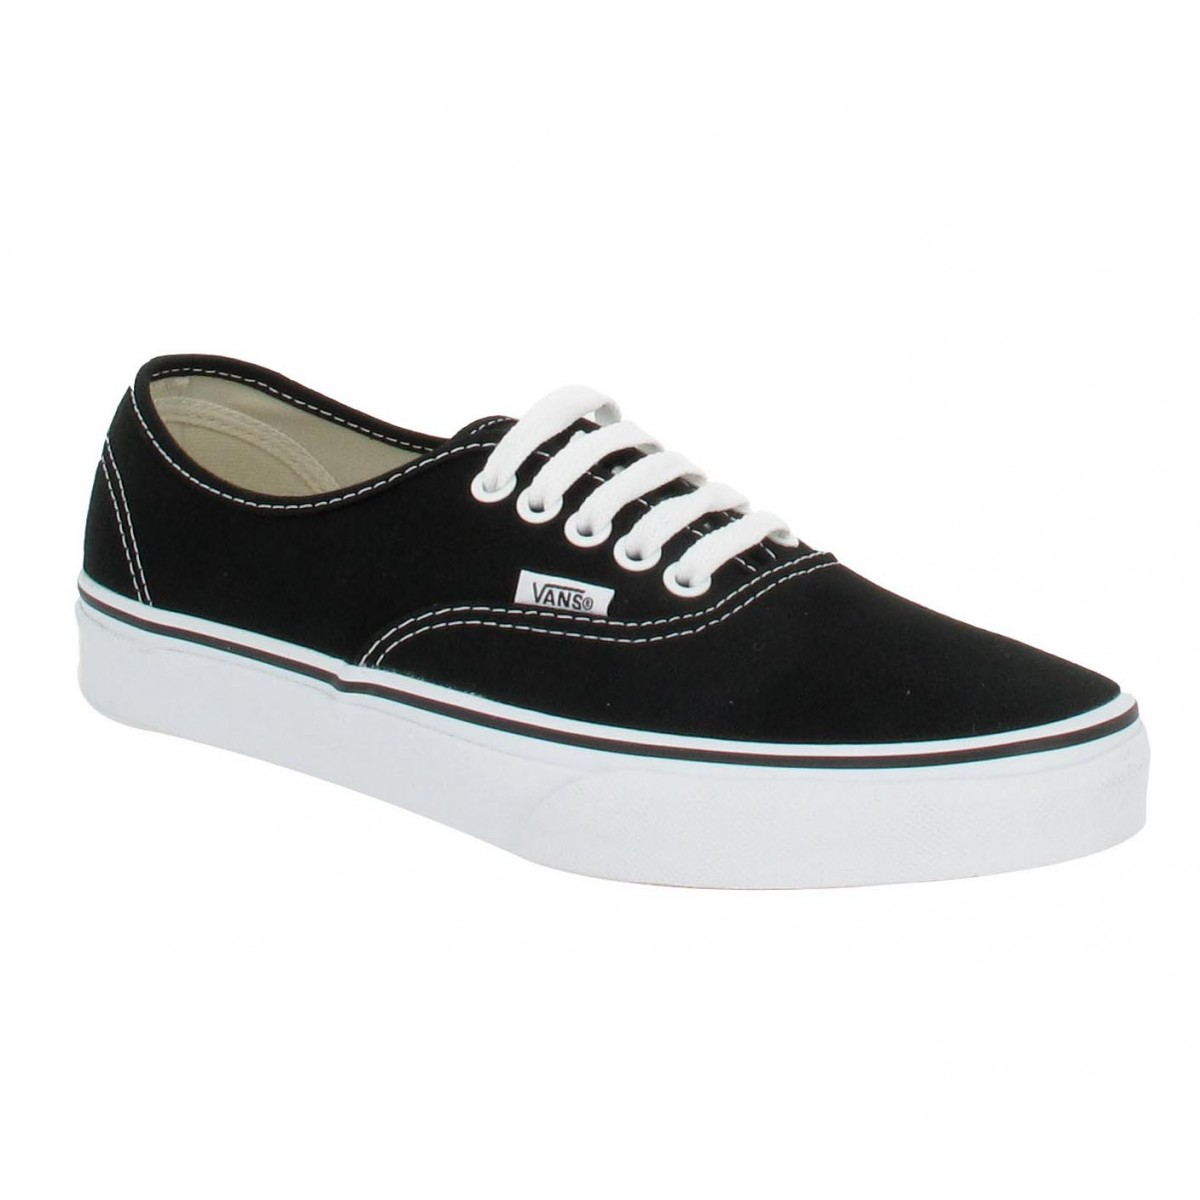 Baskets VANS Authentic toile Femme Noir